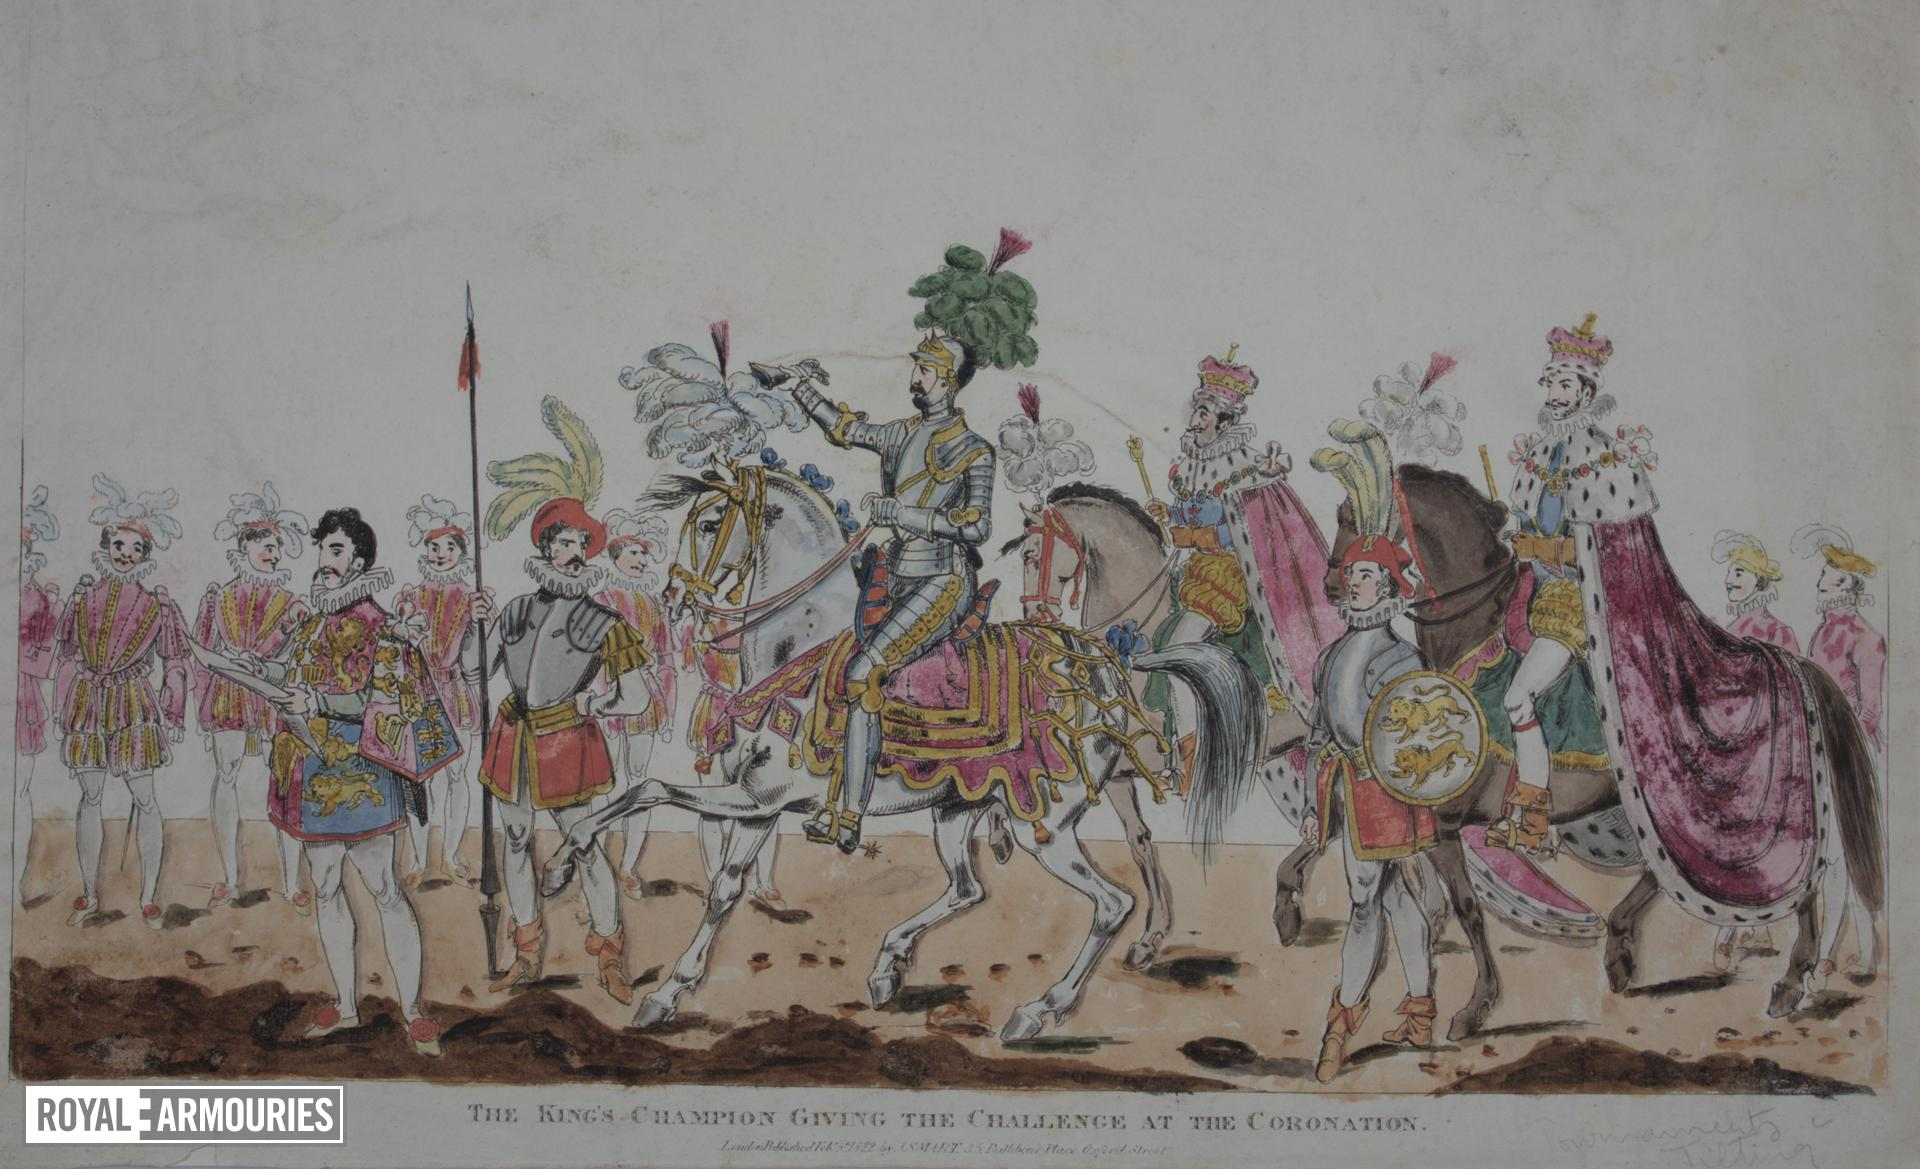 Print Coloured Engraving:  'The King's Champion giving the challenge at the Coronation.' Dated 1822.